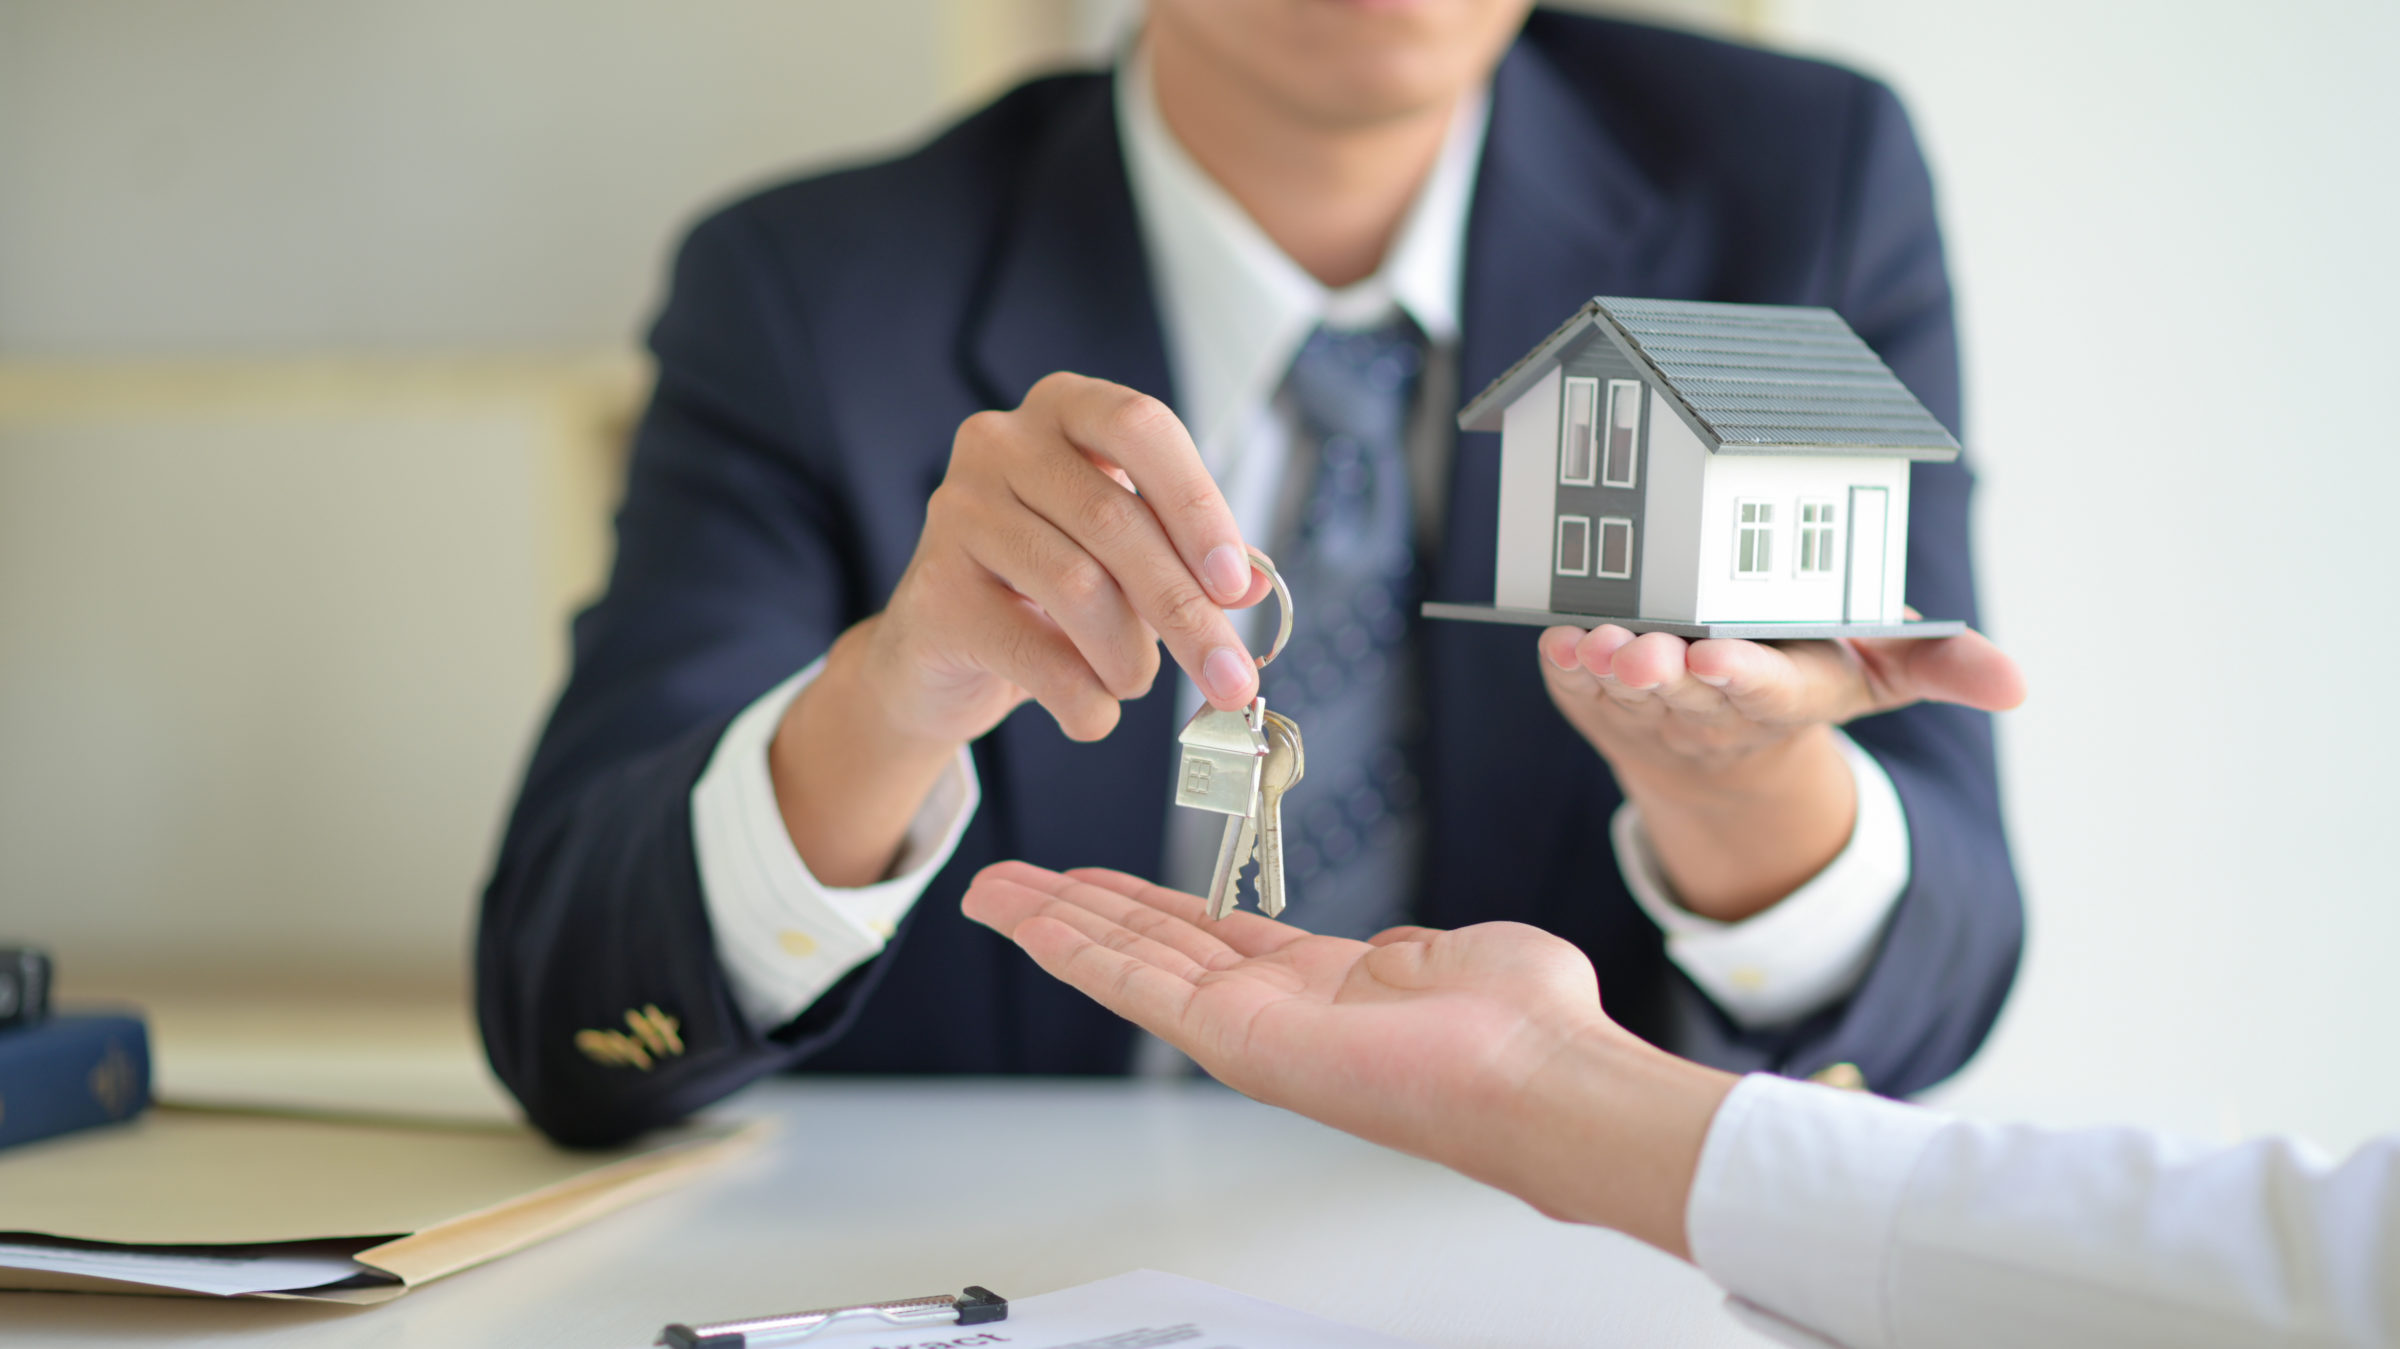 house selling broker holds the key and model house CD75HL8